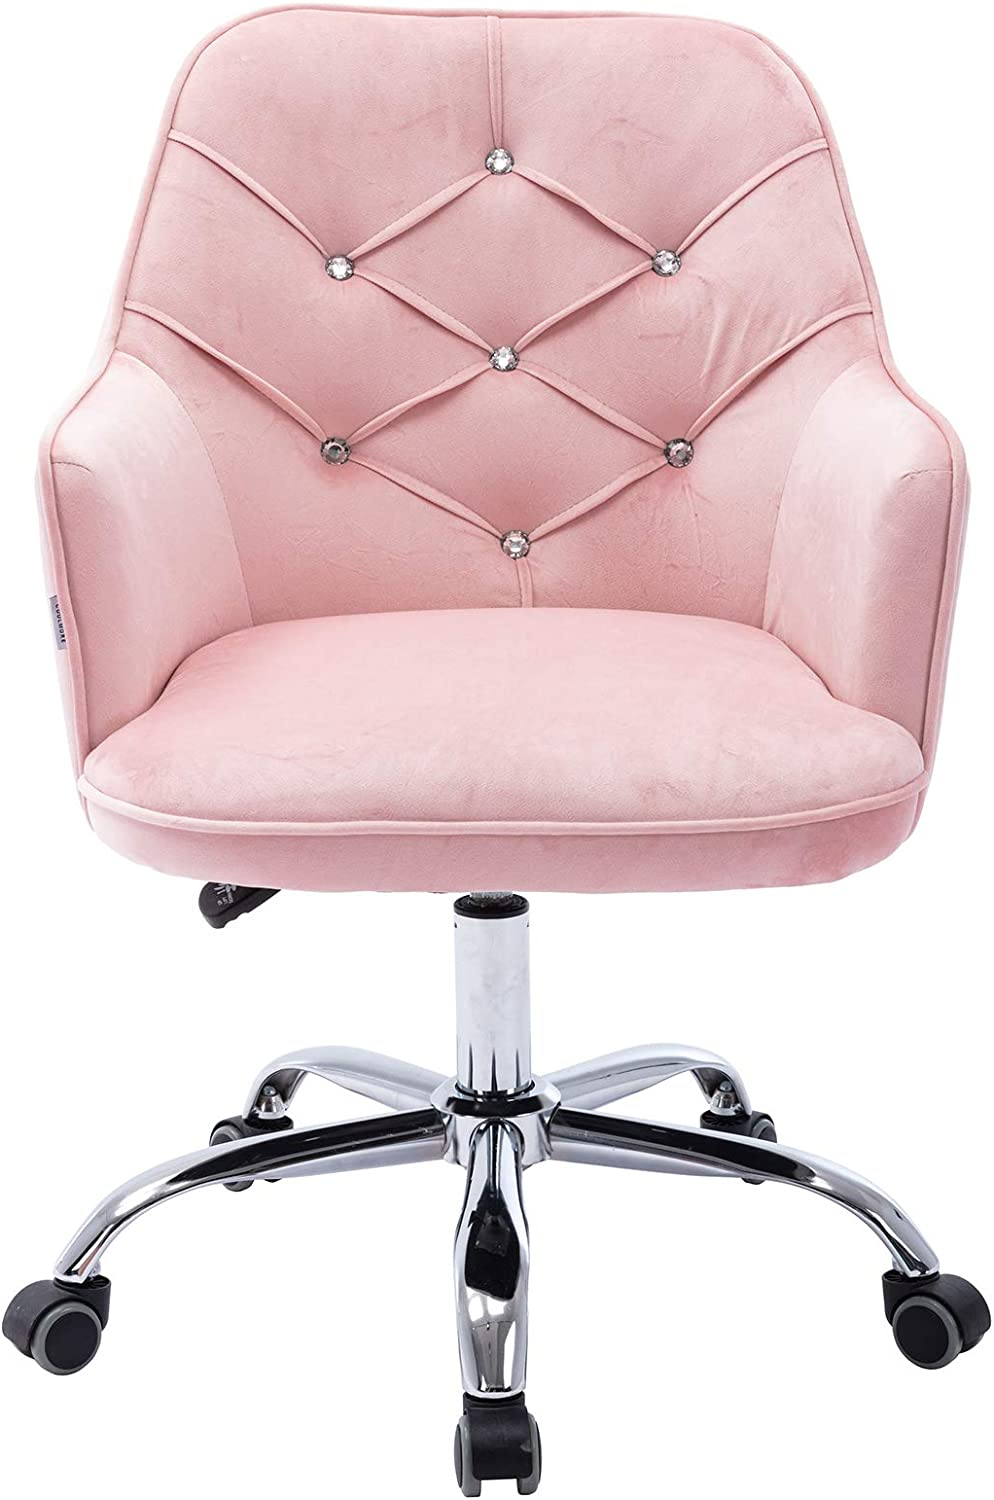 Goujxcy Home Office Chair New Shipping Free Shipping Velvet Deluxe Desk Metal with Mode Base